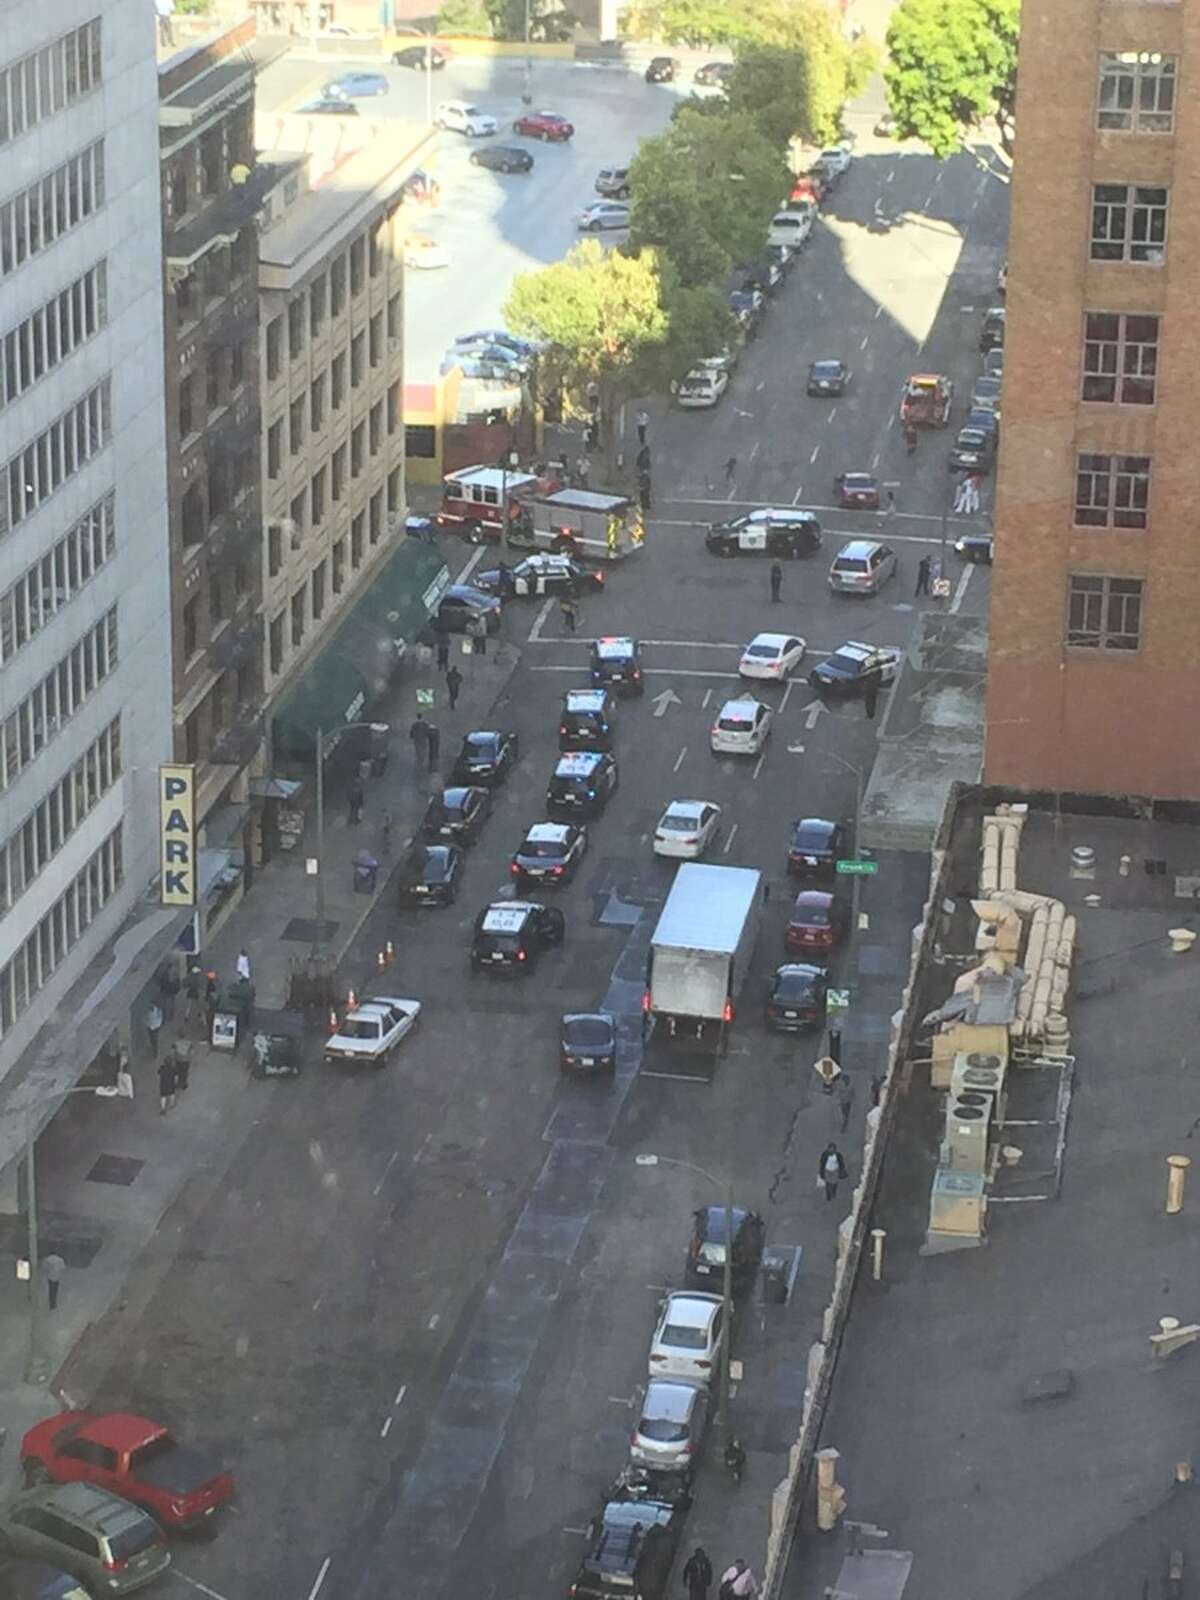 There were reports of multiple shots fired in downtown Oakland on Tuesday, June 14, 2016.